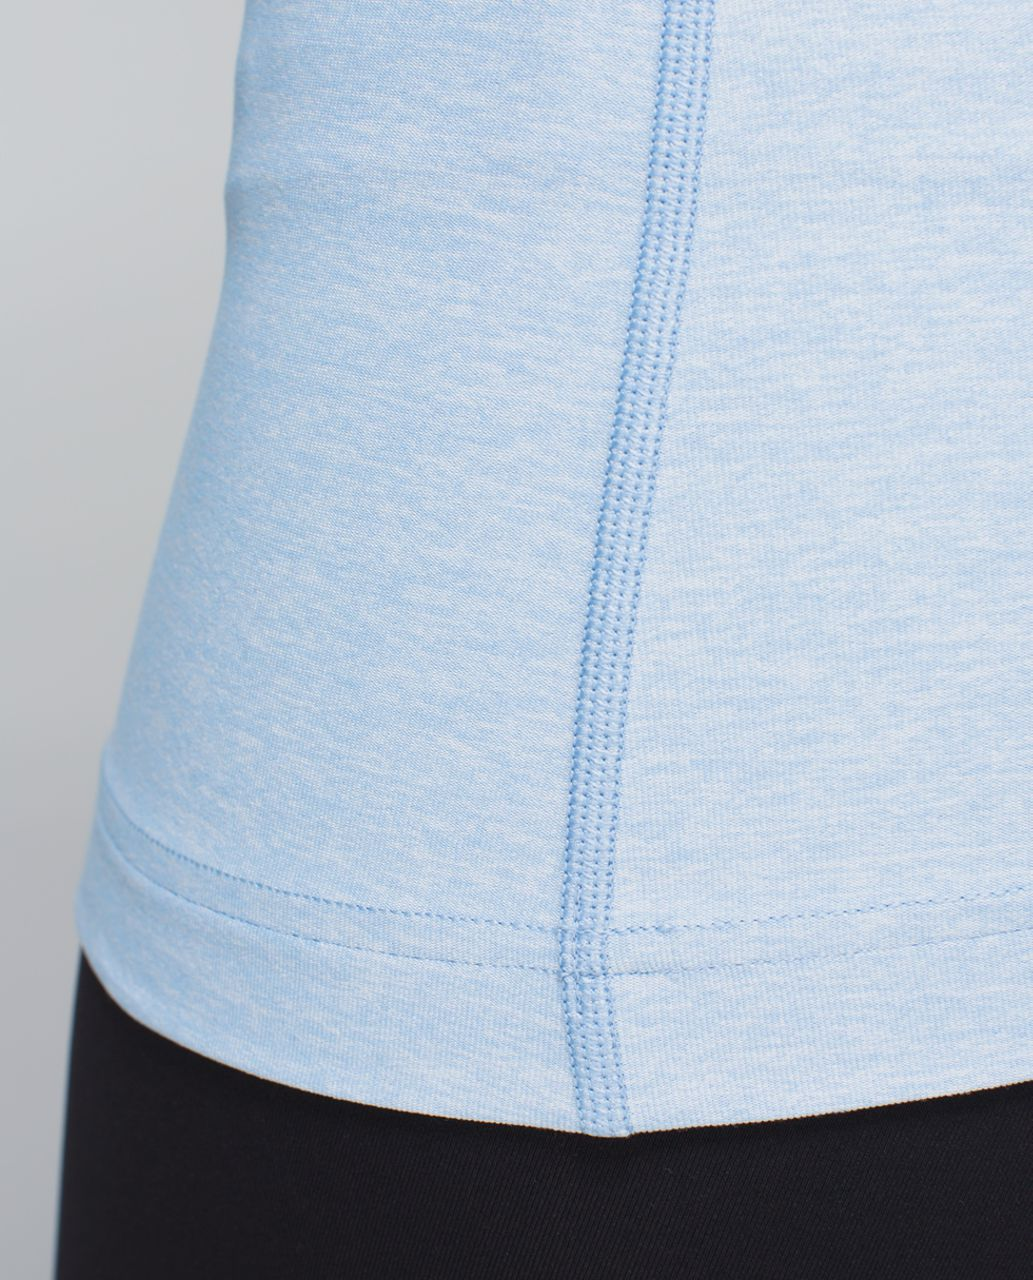 Lululemon Cool Racerback - Heathered Blue Calm